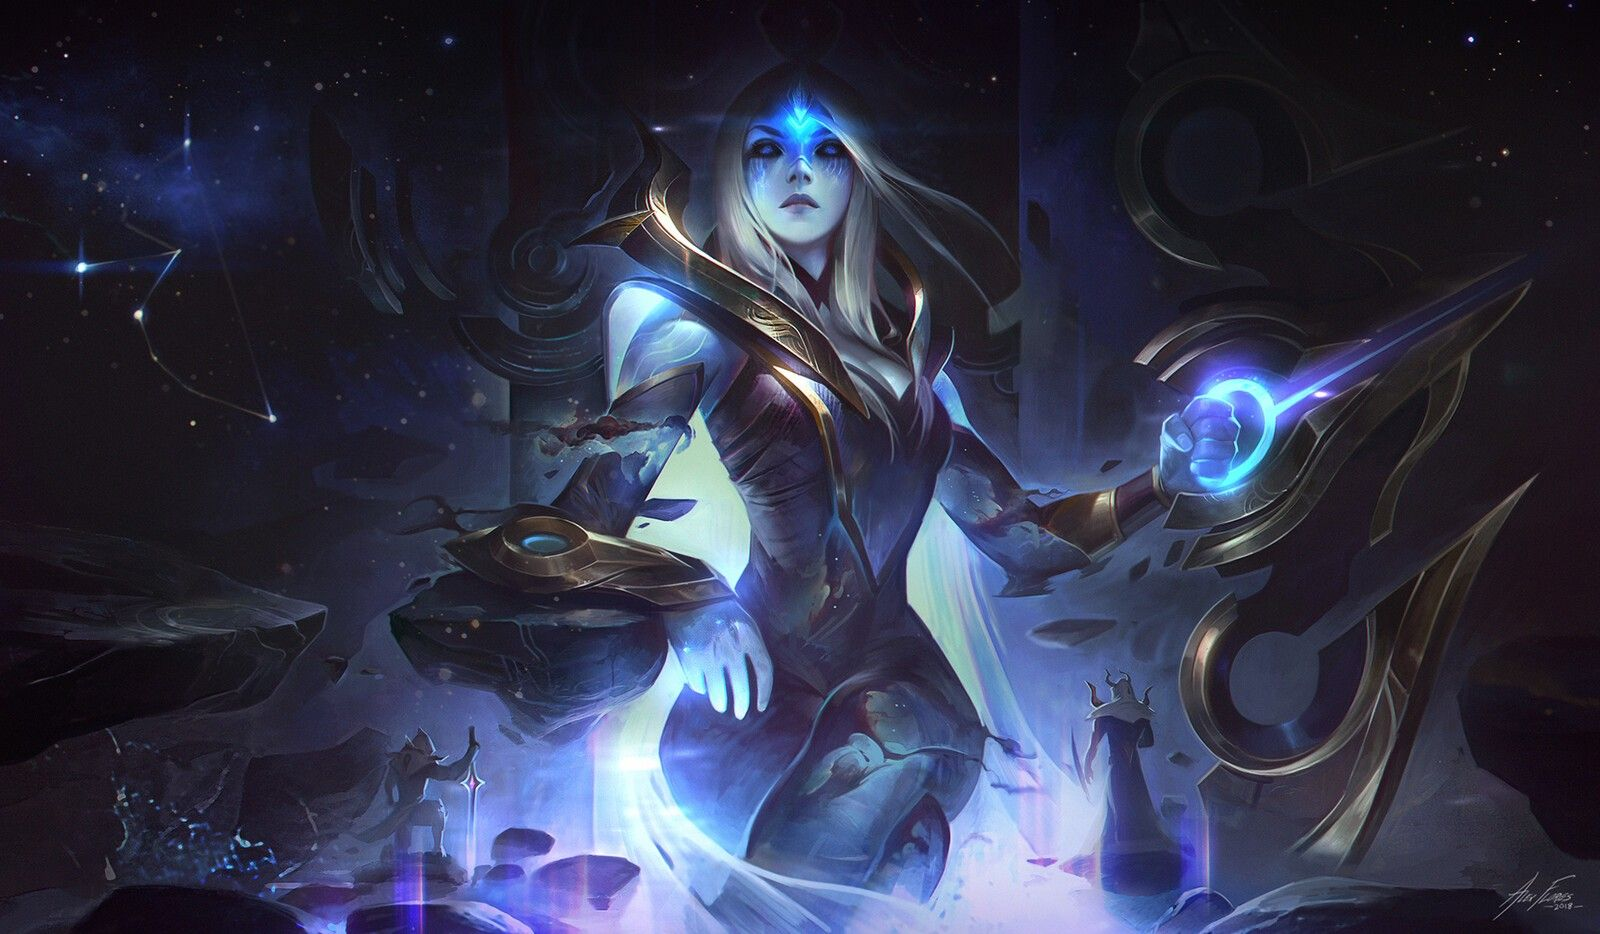 Pin by Fred l on Artwork & Illustration Lol league of